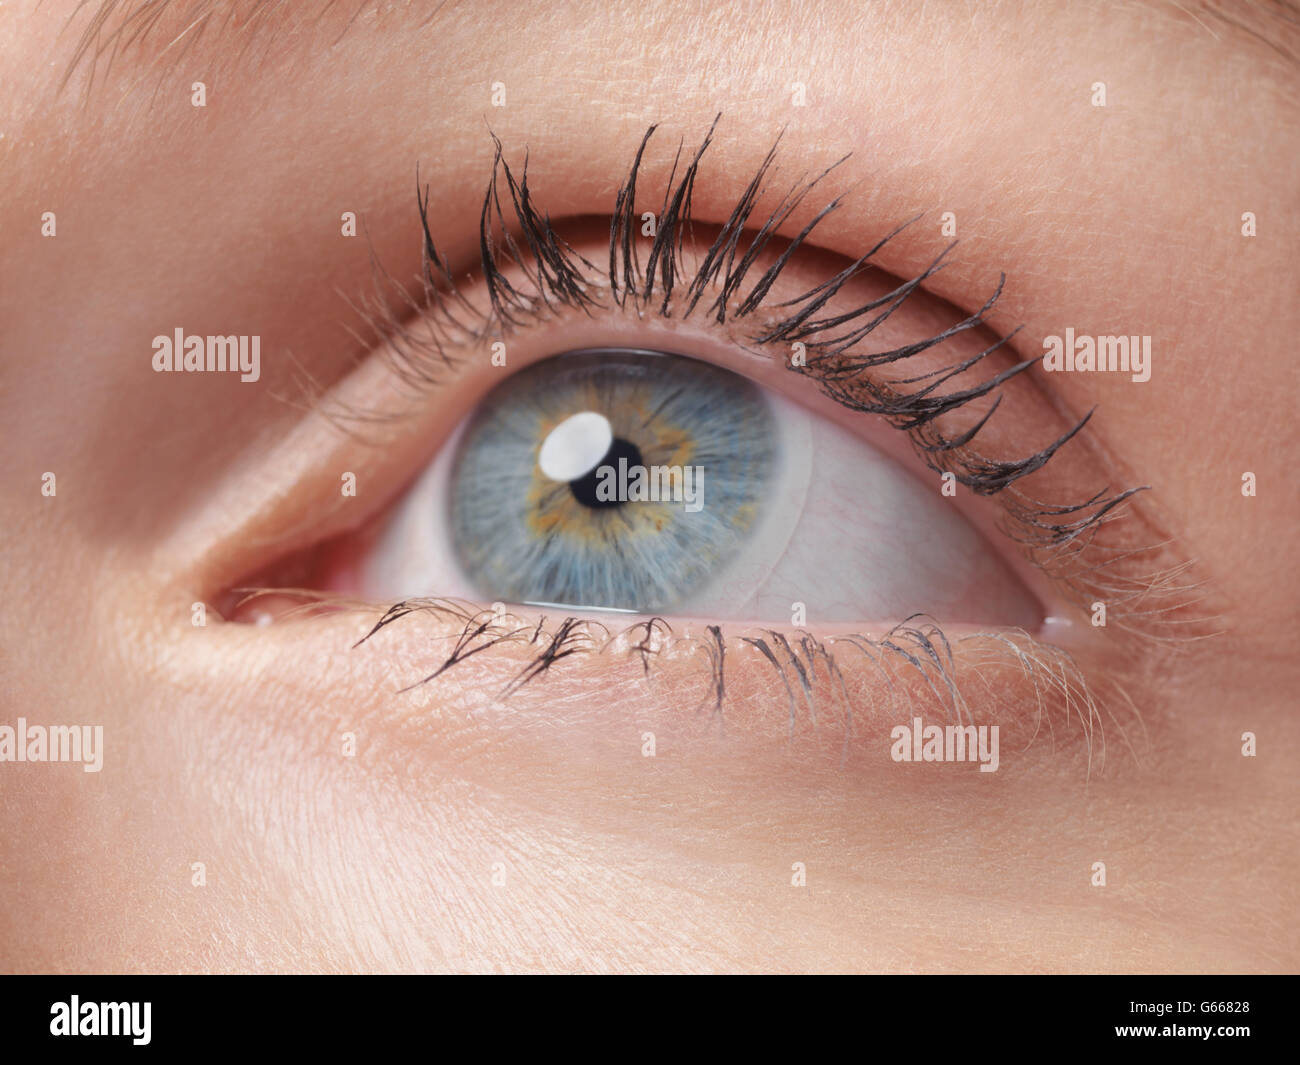 043a274a Closeup of a woman's blue eye wearing contact lens - Stock Image